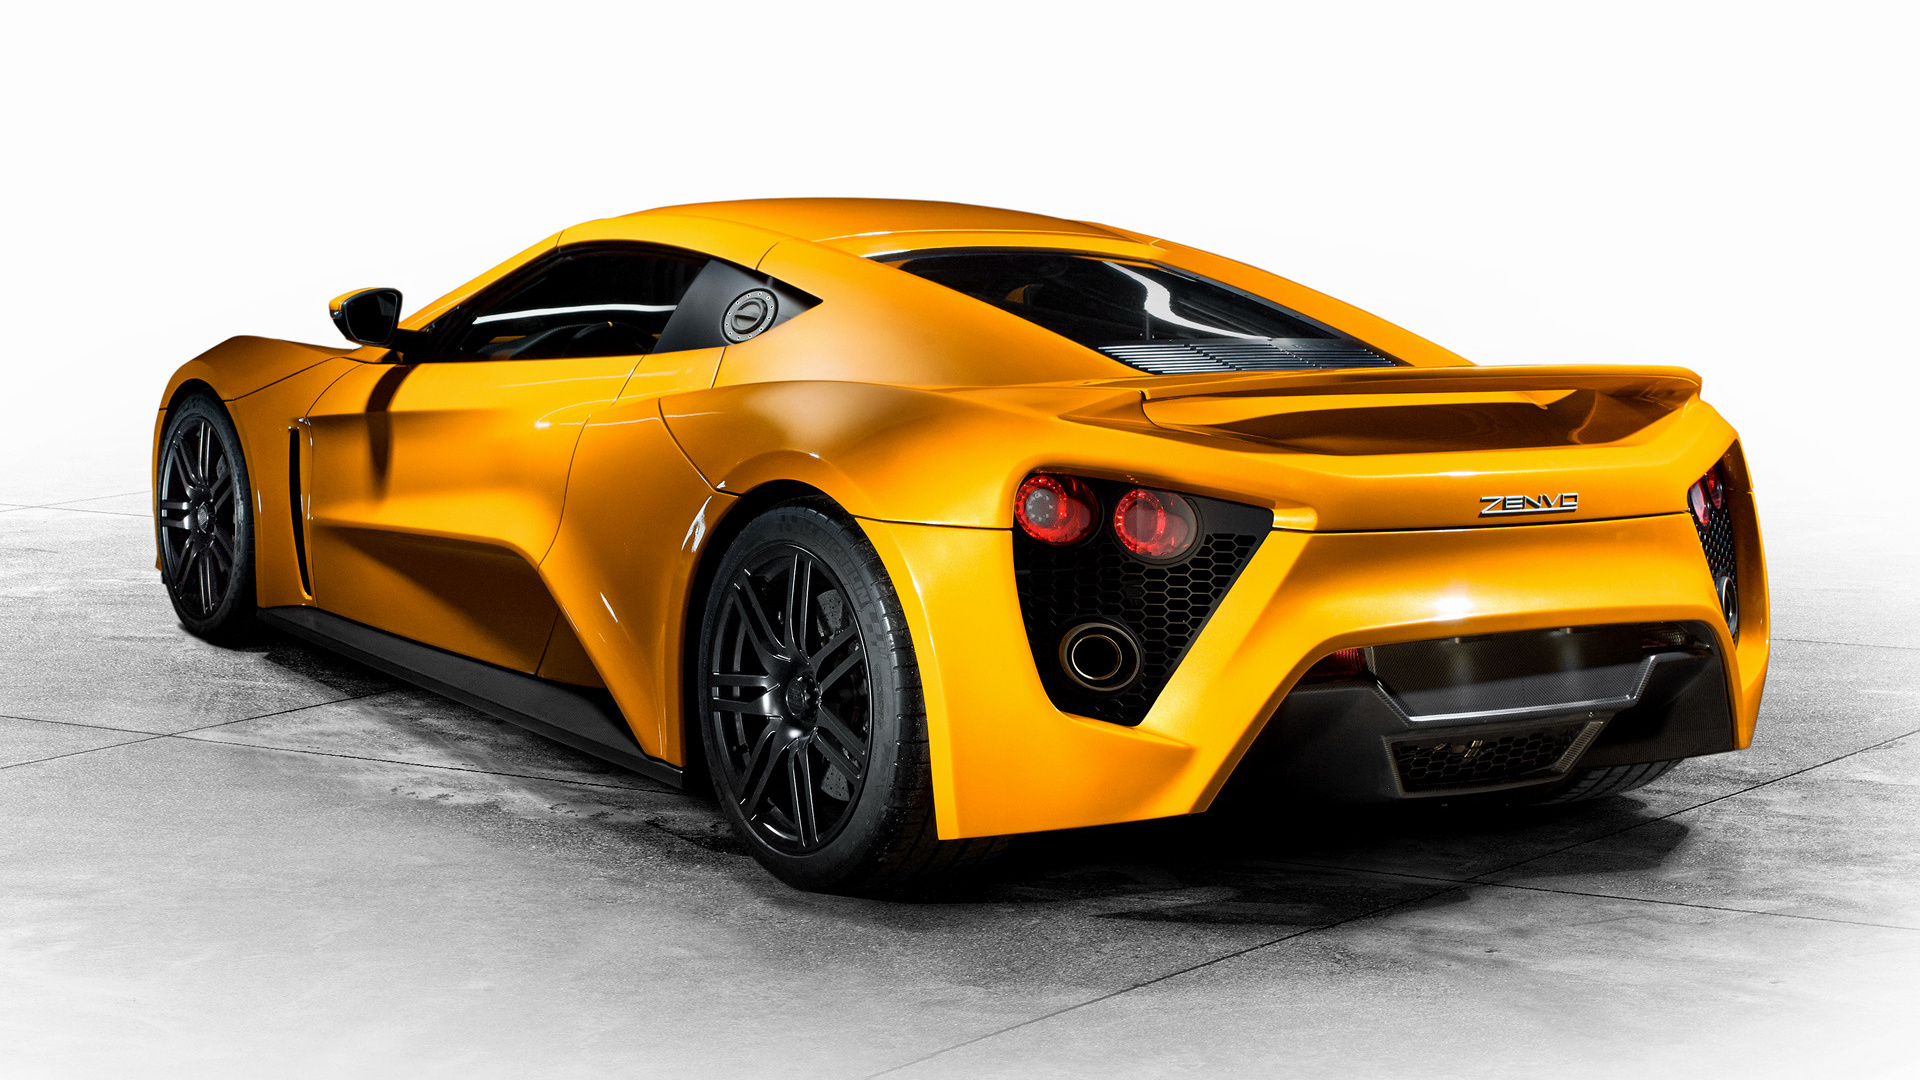 St1 Car Wallpaper 2015 Zenvo St1 Wallpapers And Hd Images Car Pixel